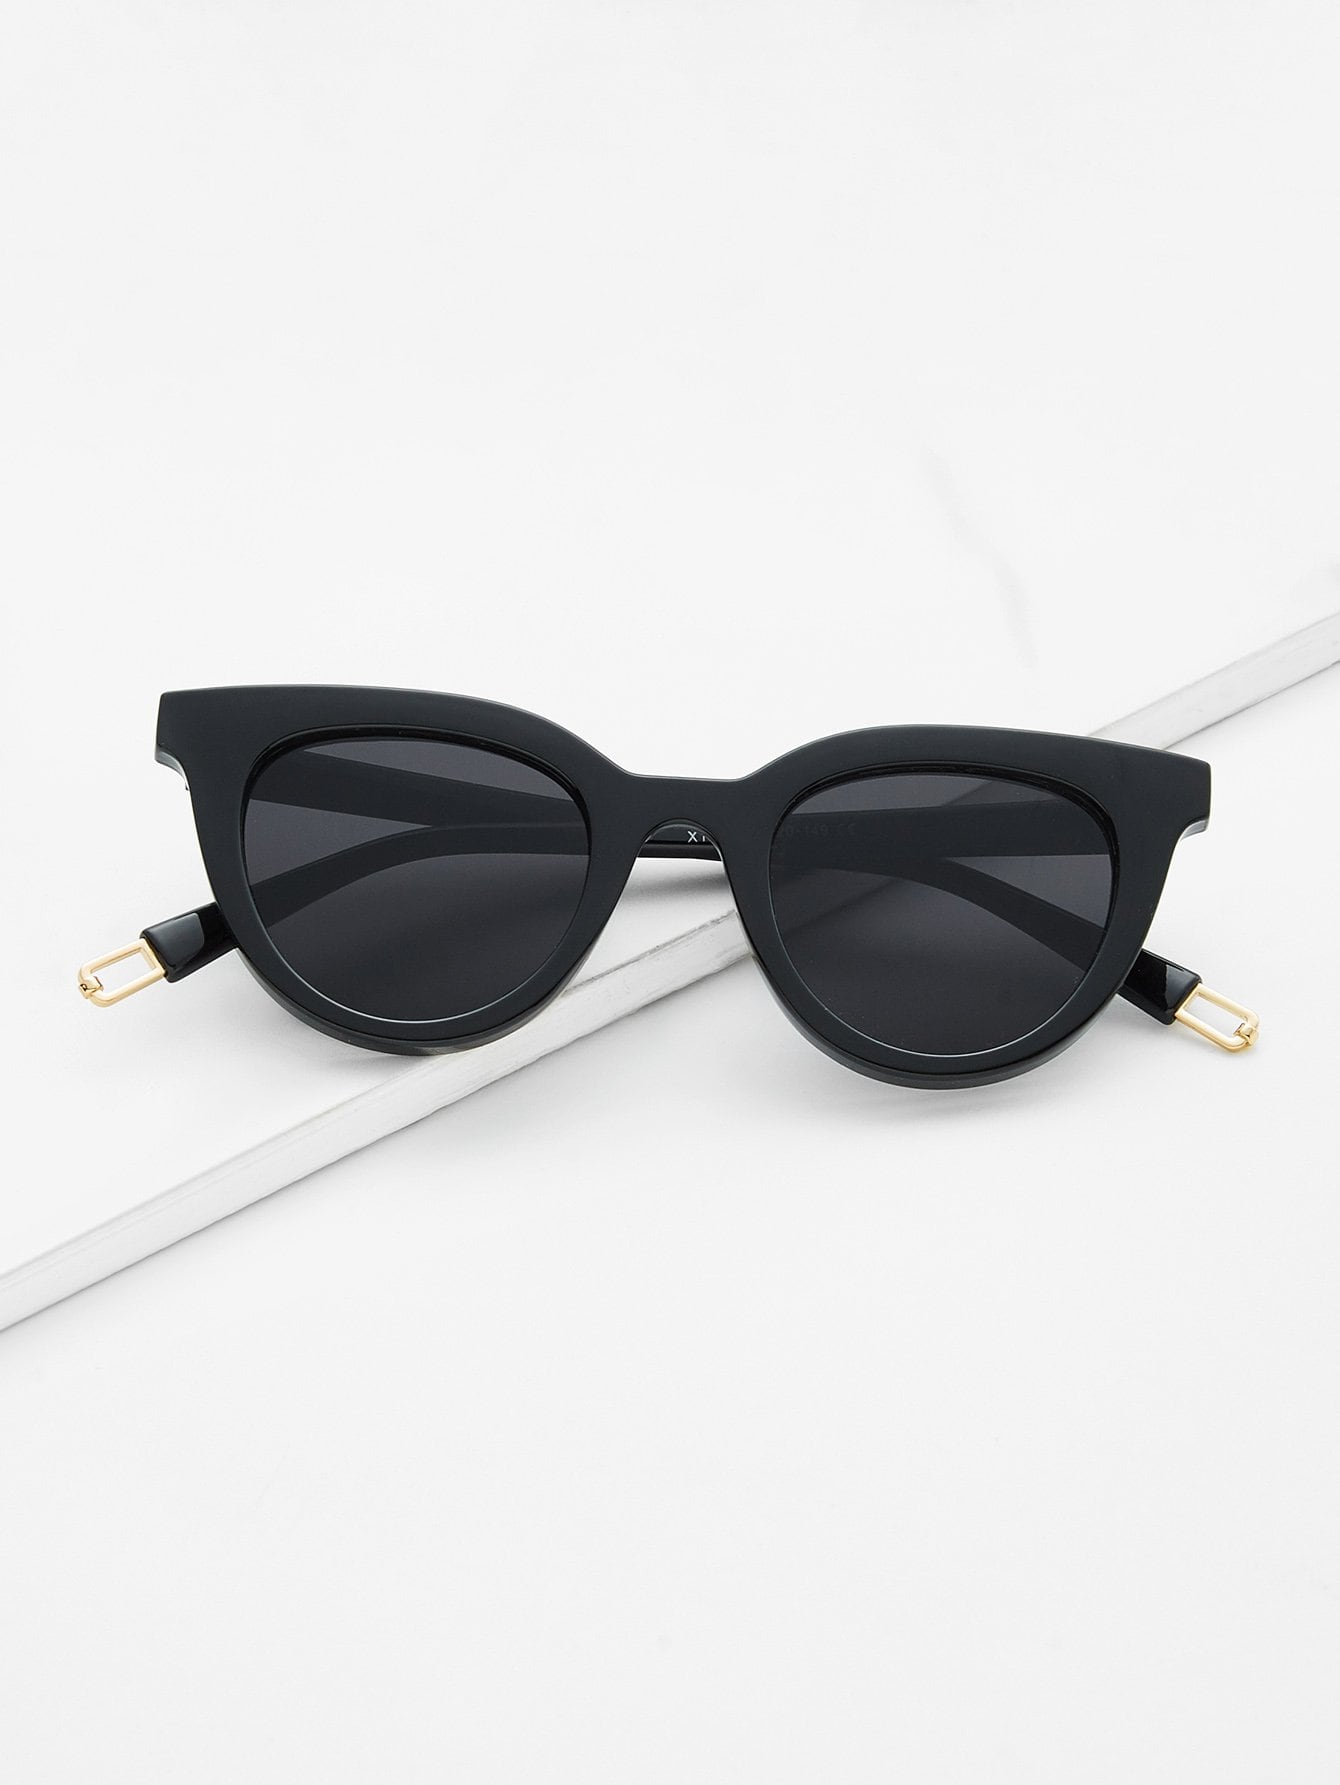 Flat Lens Cat Eye Sunglasses cat eye glasses tinize 2015 tr90 5832